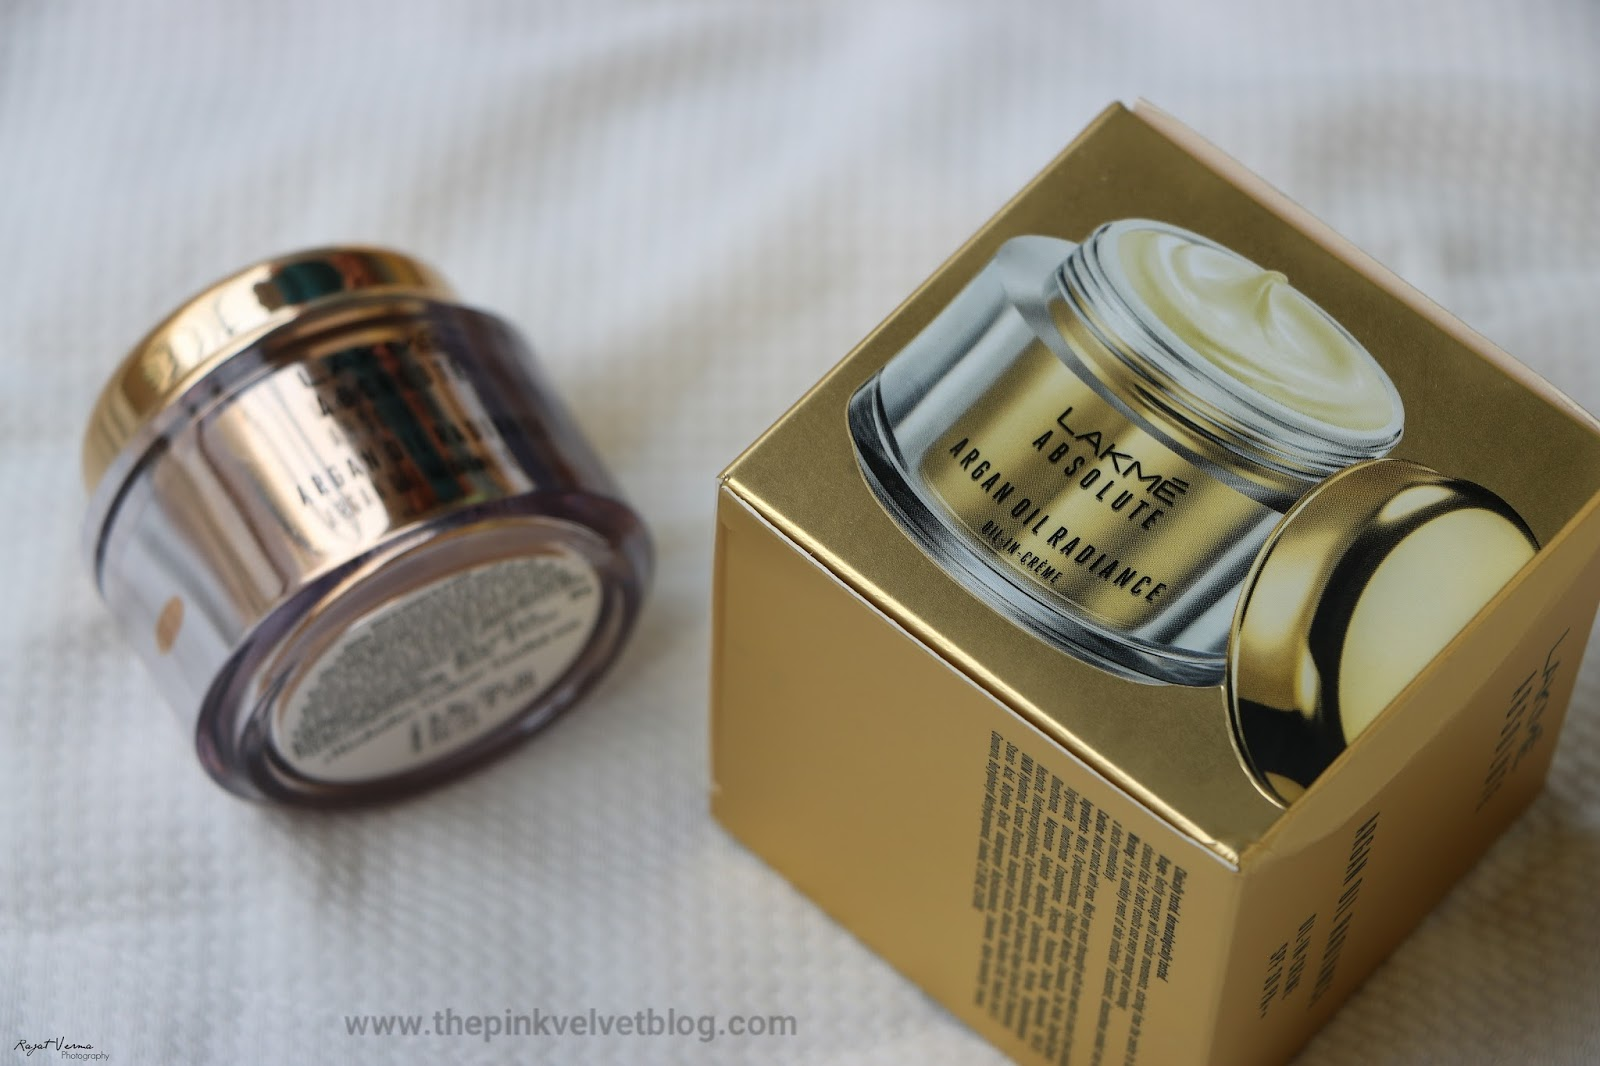 Lakme Argan Oil Radiance Creme